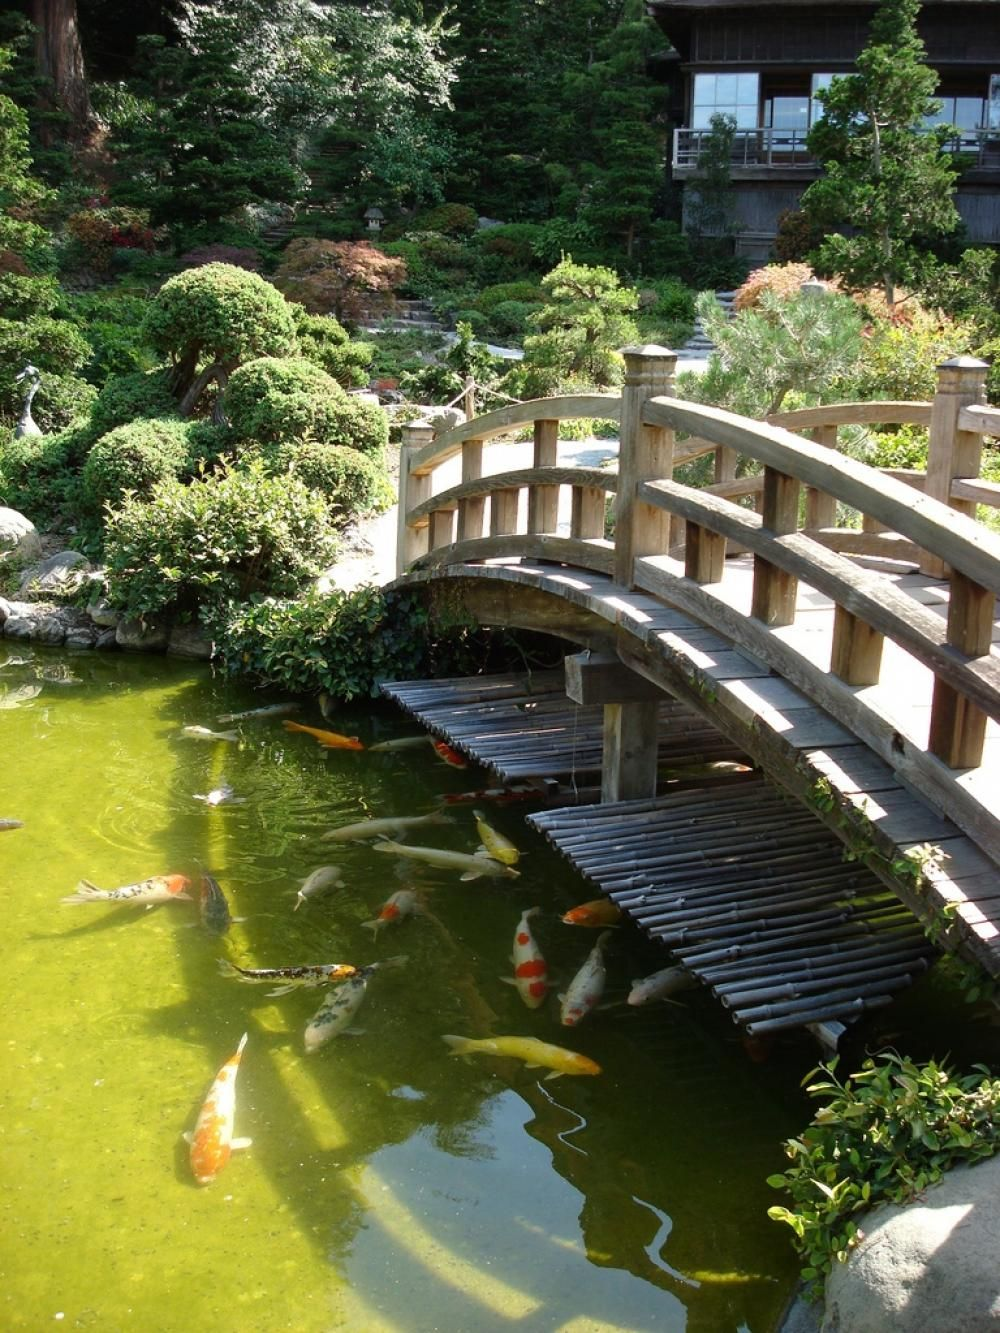 Gardening large koi pond with bridge in japanese garden for Koi ponds and gardens